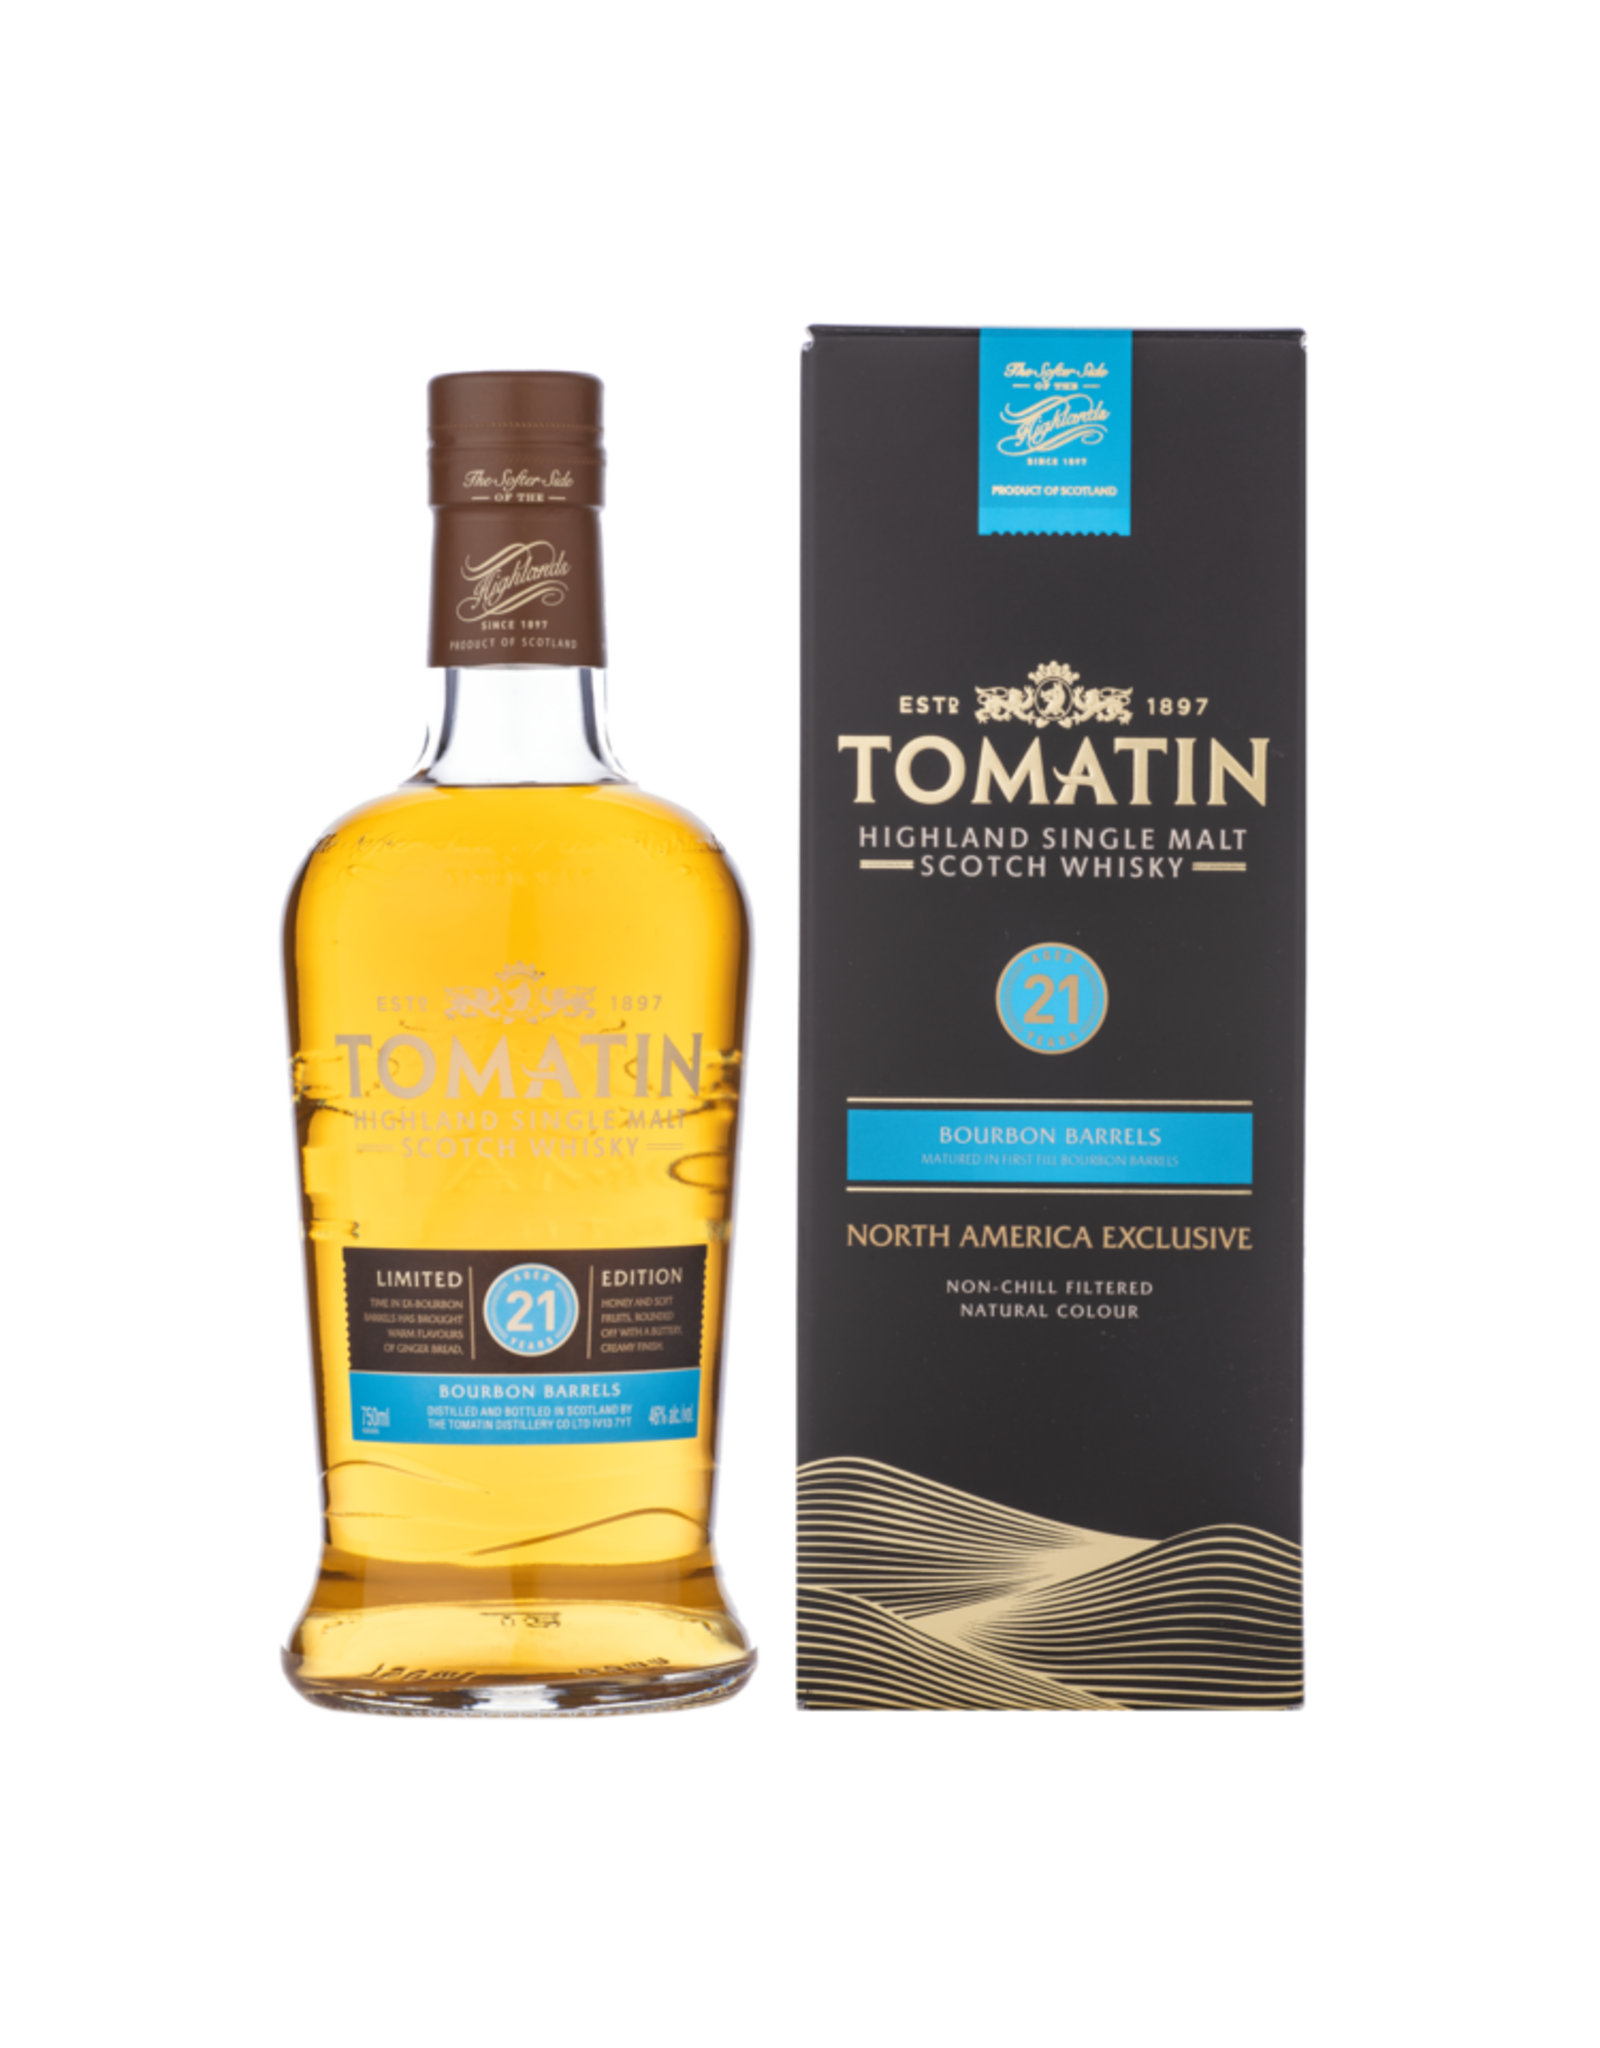 Tomatin Single Malt Scotch Whiskey 21 Year